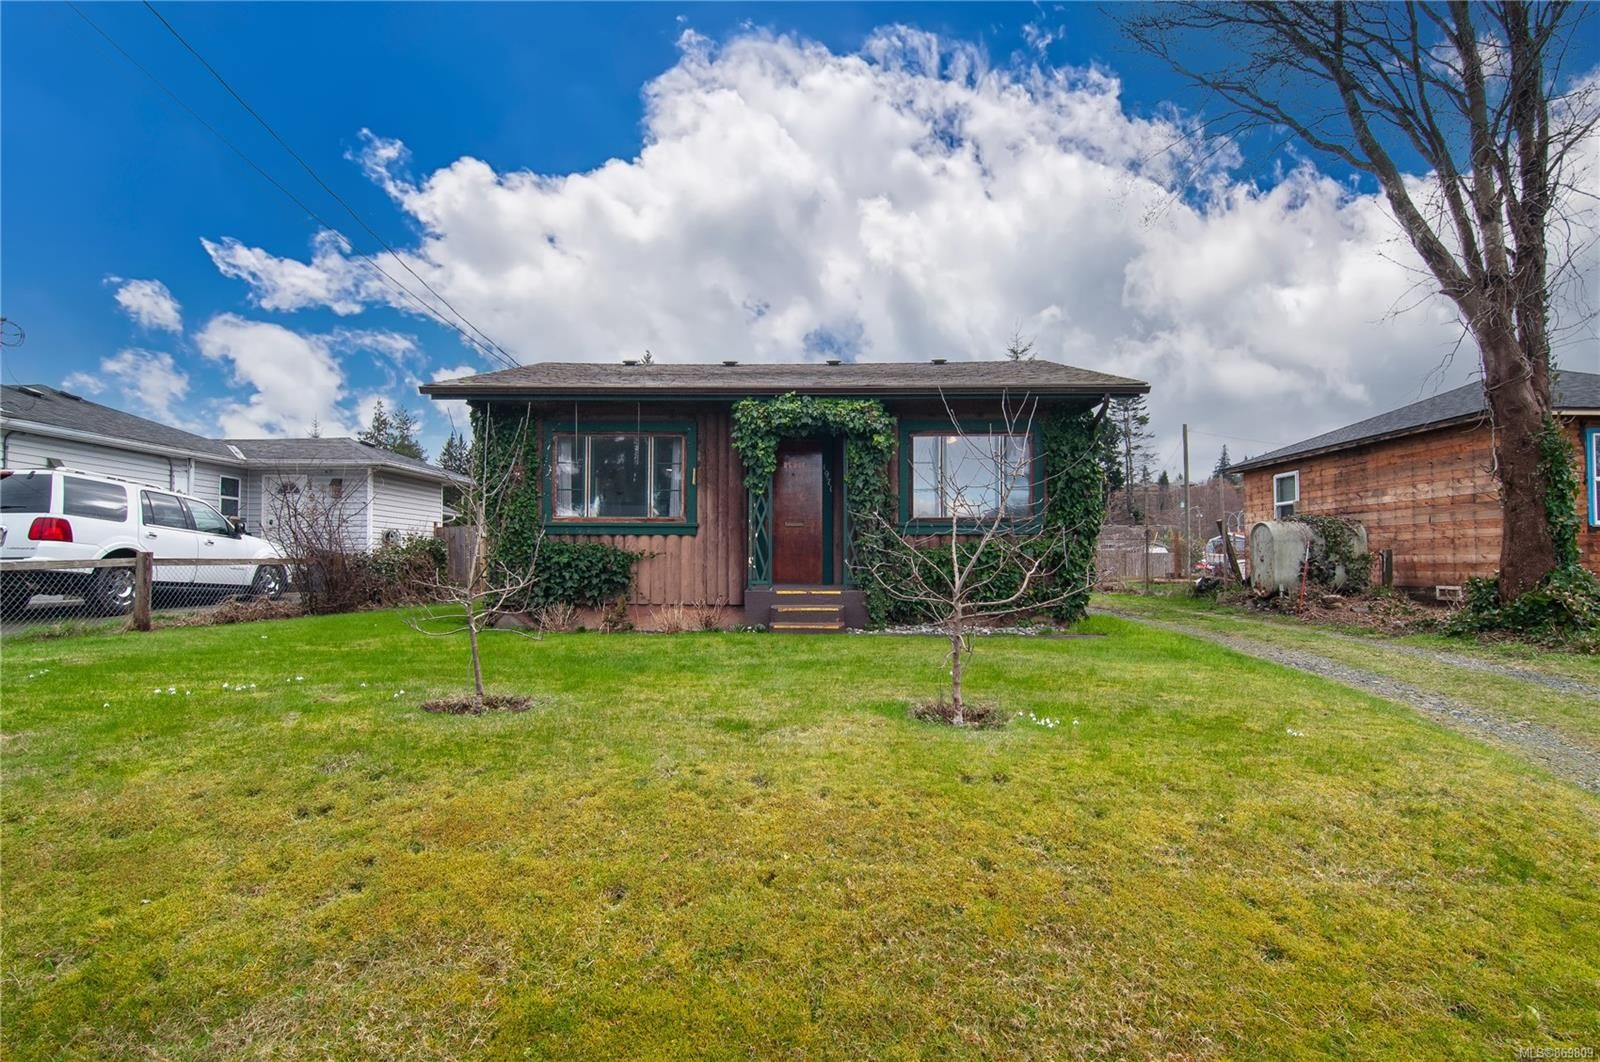 Main Photo: 1971 16th Ave in : CR Campbell River North House for sale (Campbell River)  : MLS®# 869809